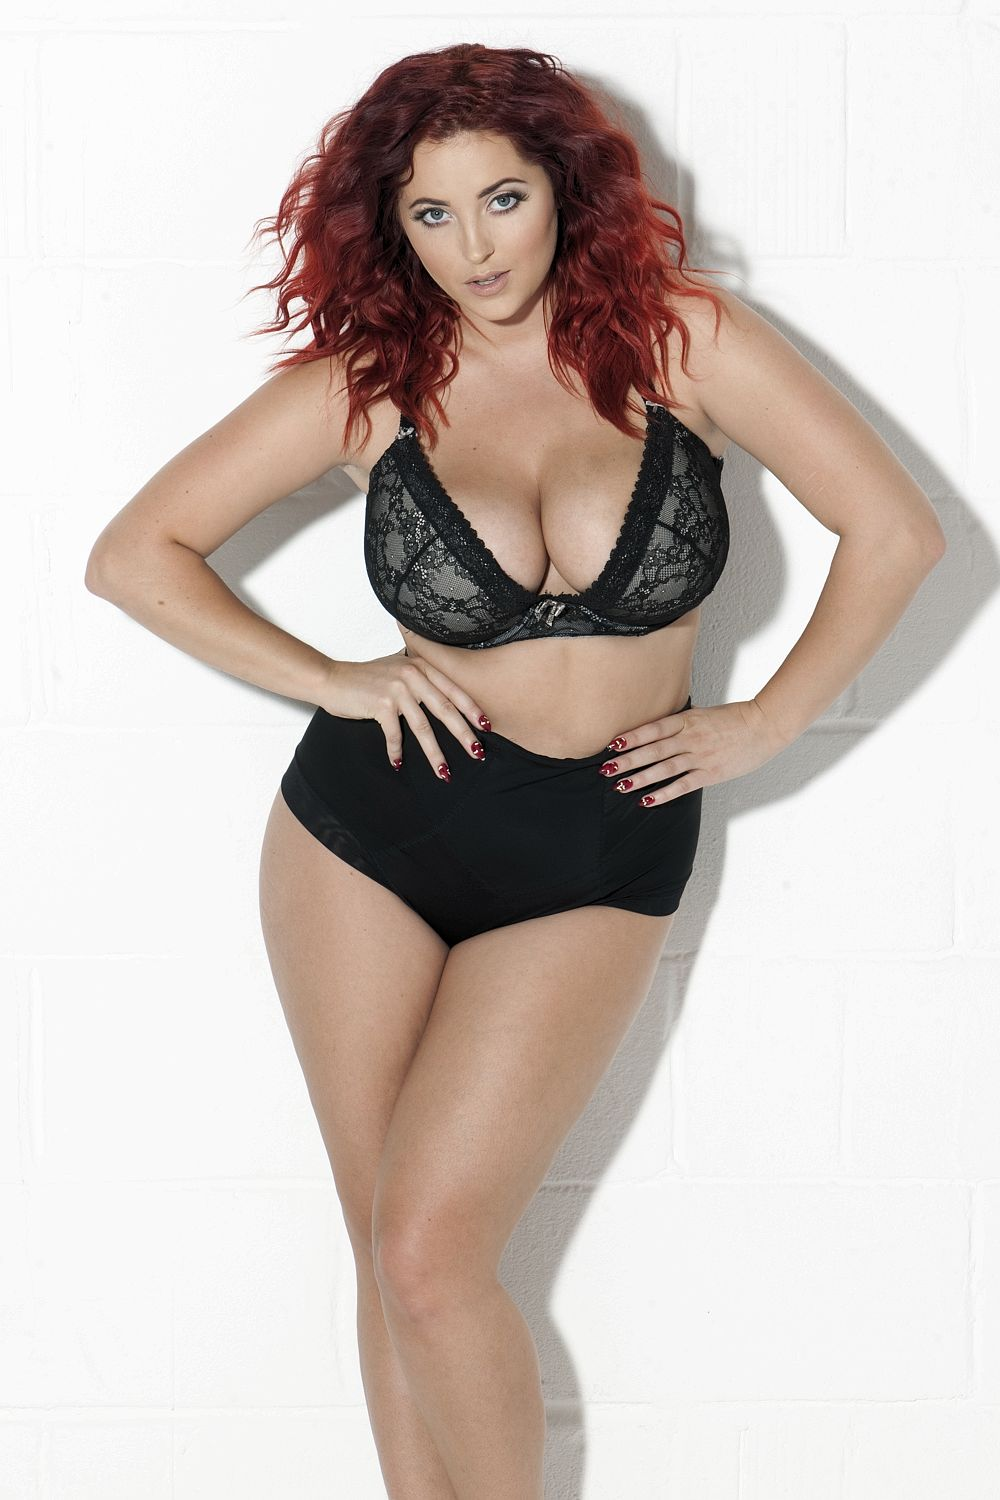 Lucy Collett in Bra & Topless (4 Photos)